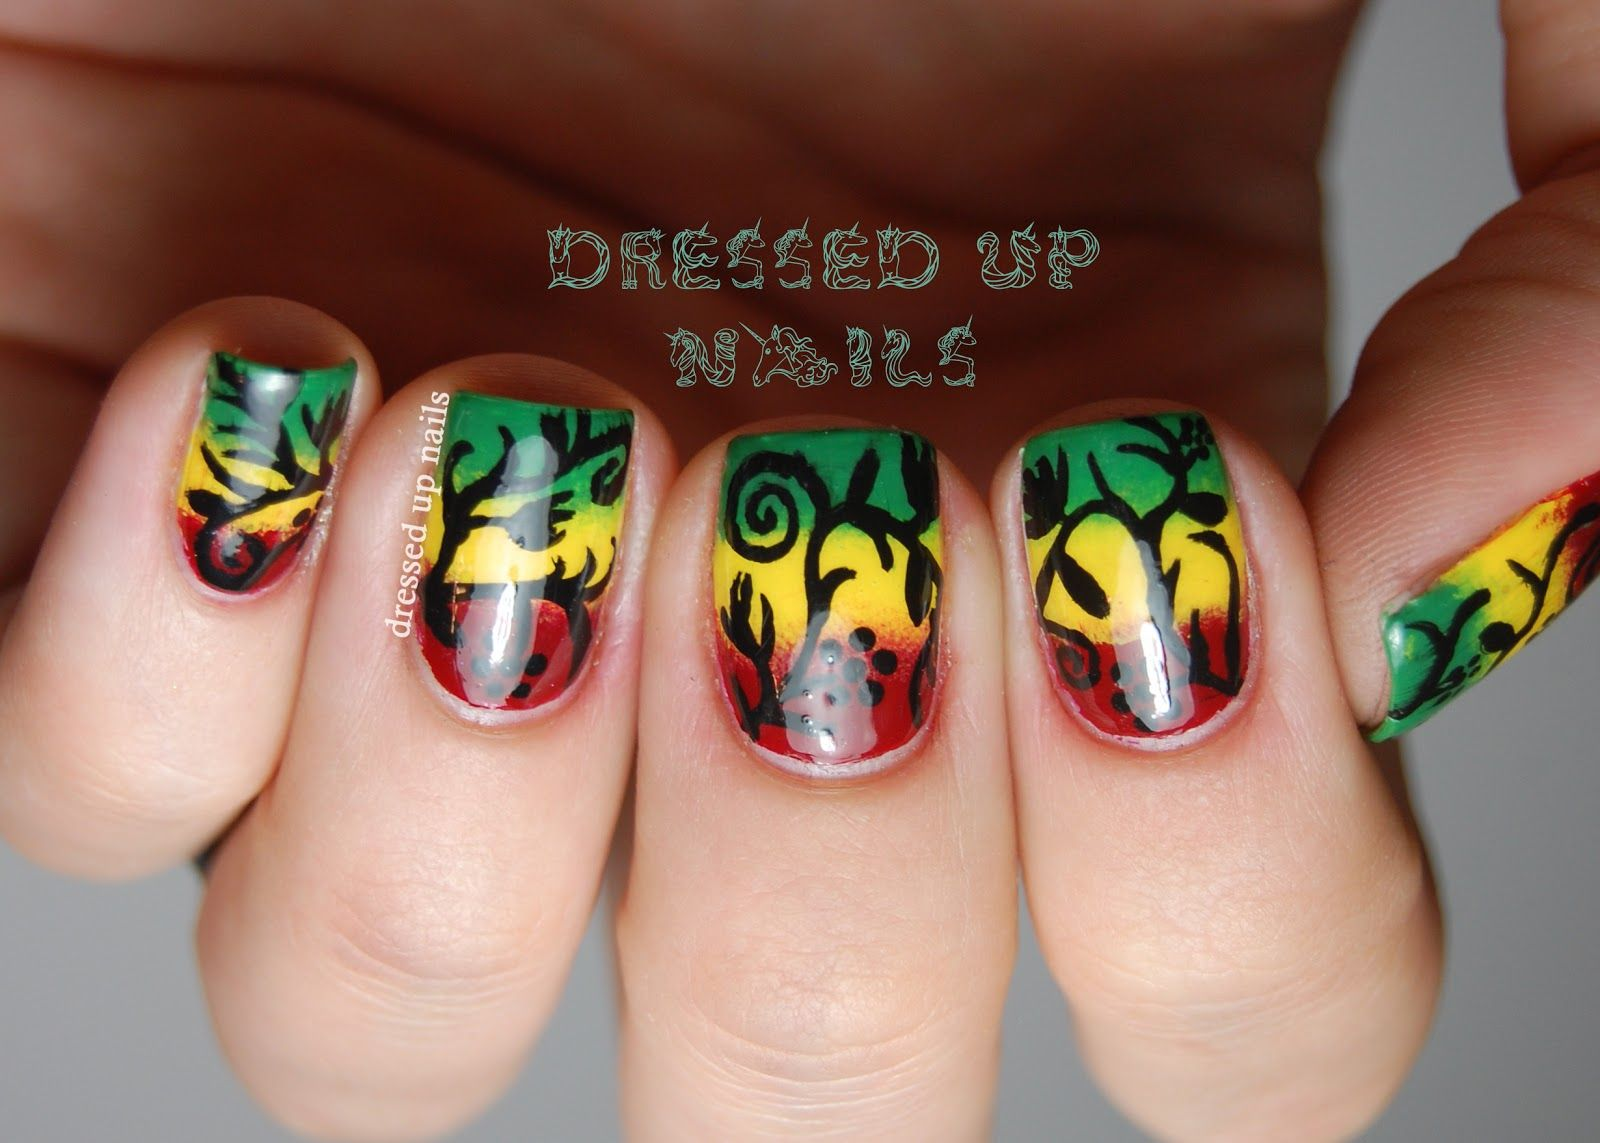 Dressed Up Nails Freehand Floral Silhouette Nail Art